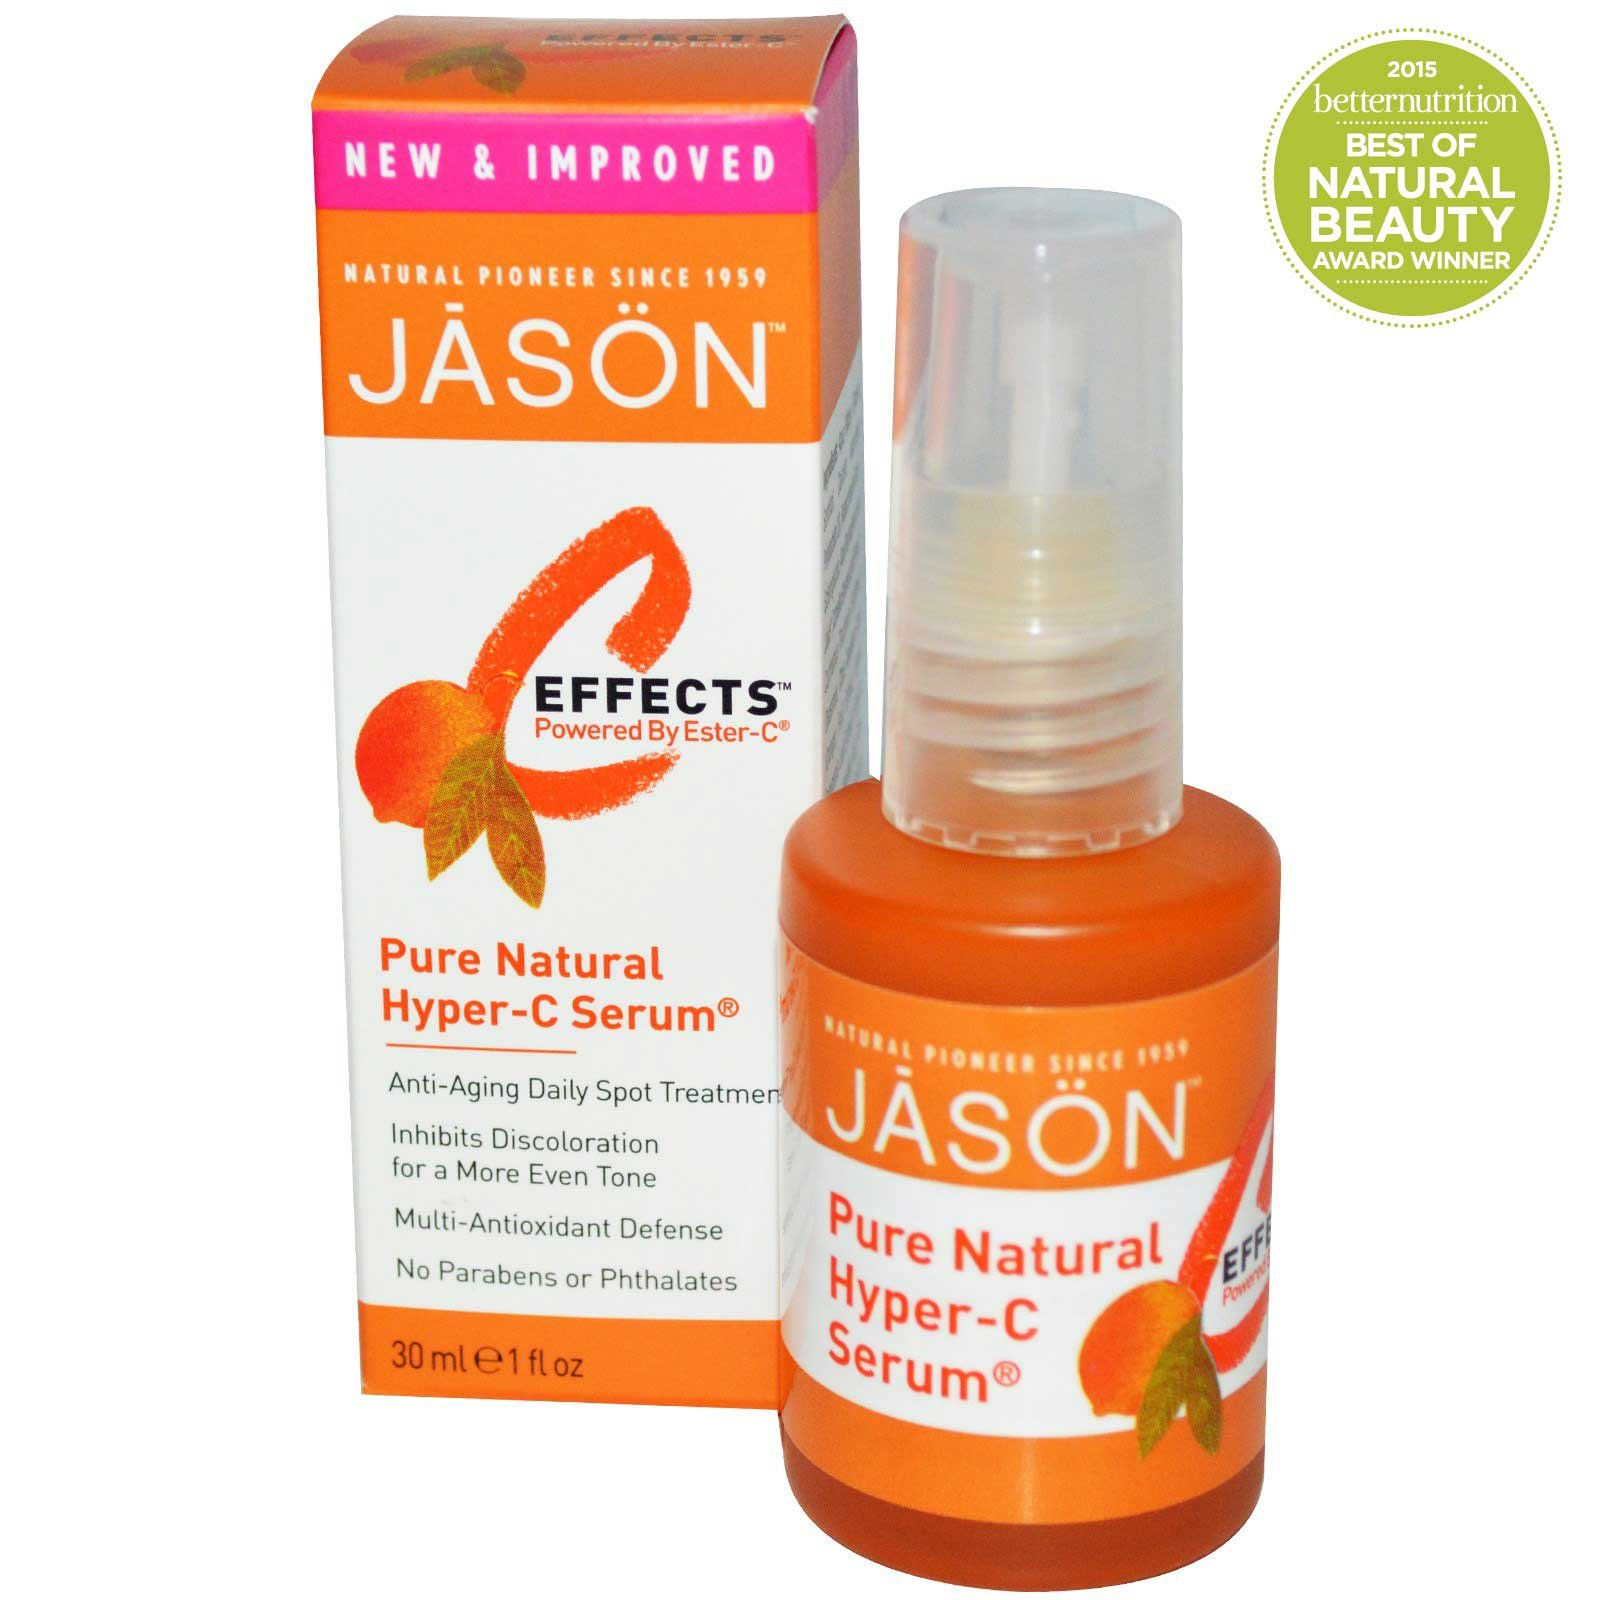 Jason Natural Ester-C (Hyper-C) Serum For Anti-Aging Therapy - 1 Oz, 3 Pack Potent & Pure Eyewitness Eye Repair Creme - 0.5 oz. by Kiss My Face (pack of 1)